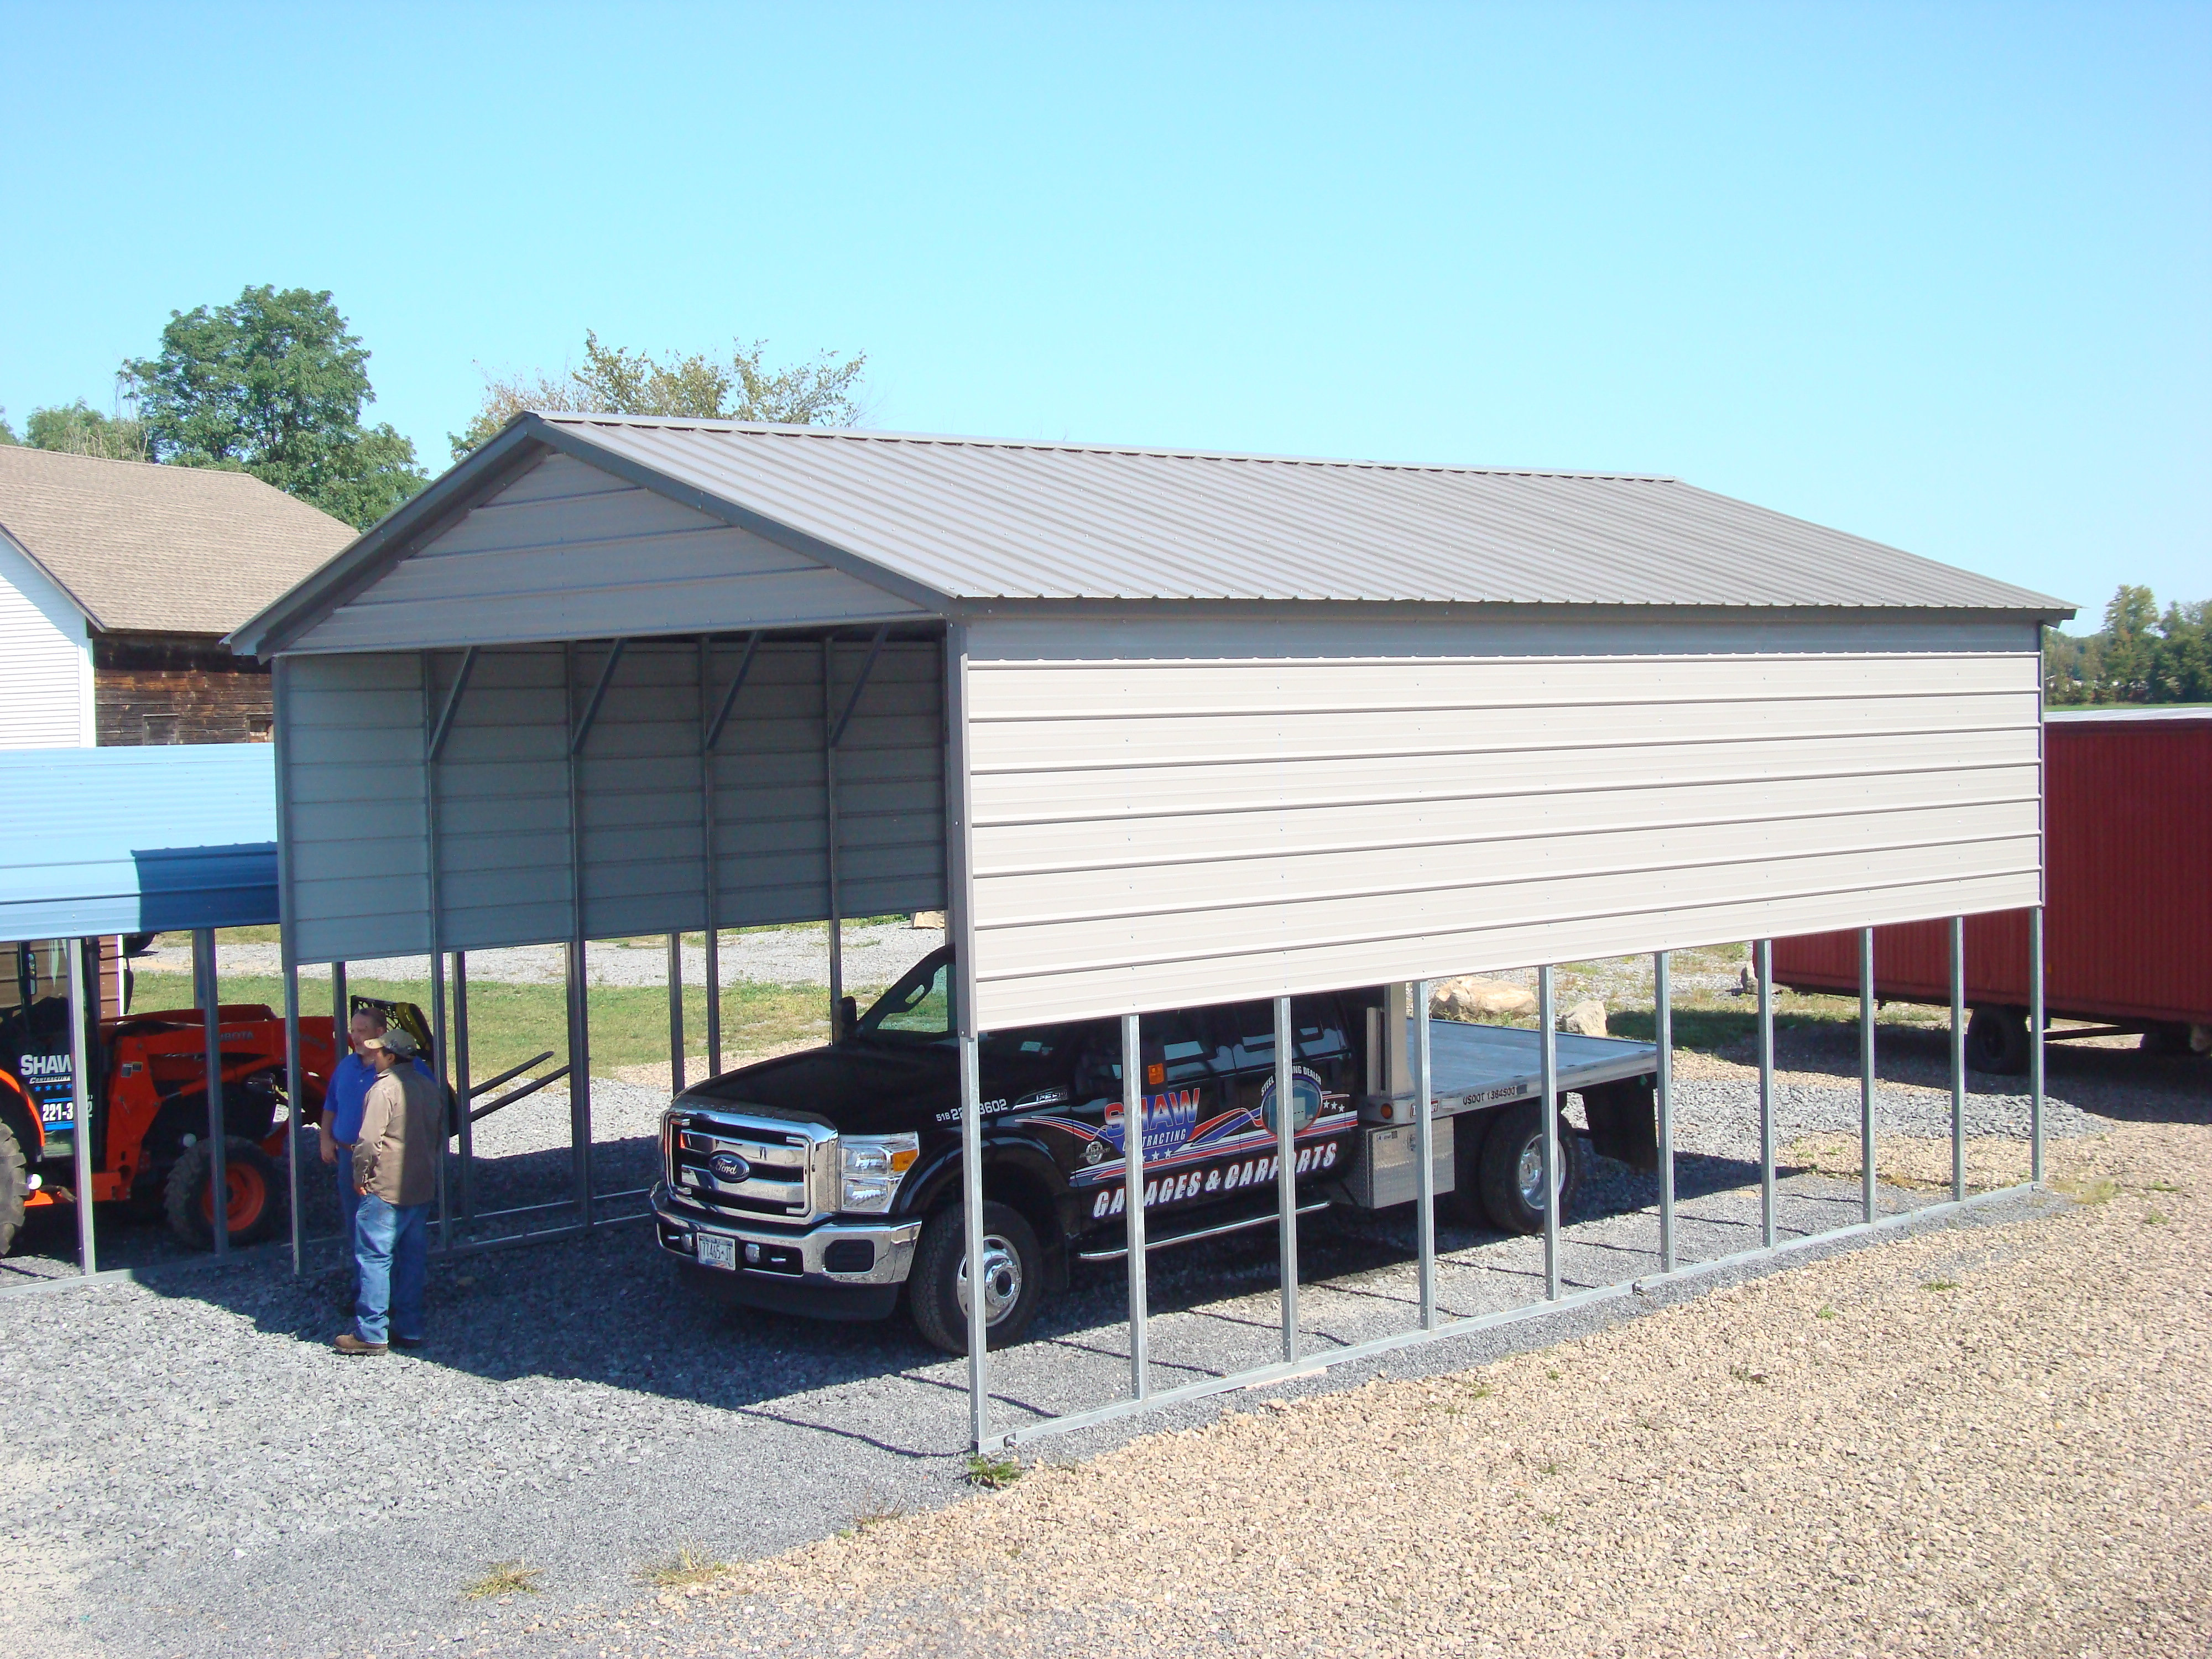 rv cover vertical 22 wide 21 length 12 leg height vertical roof 14 gauge frame certified on concrete 4 extra - Rv Cover